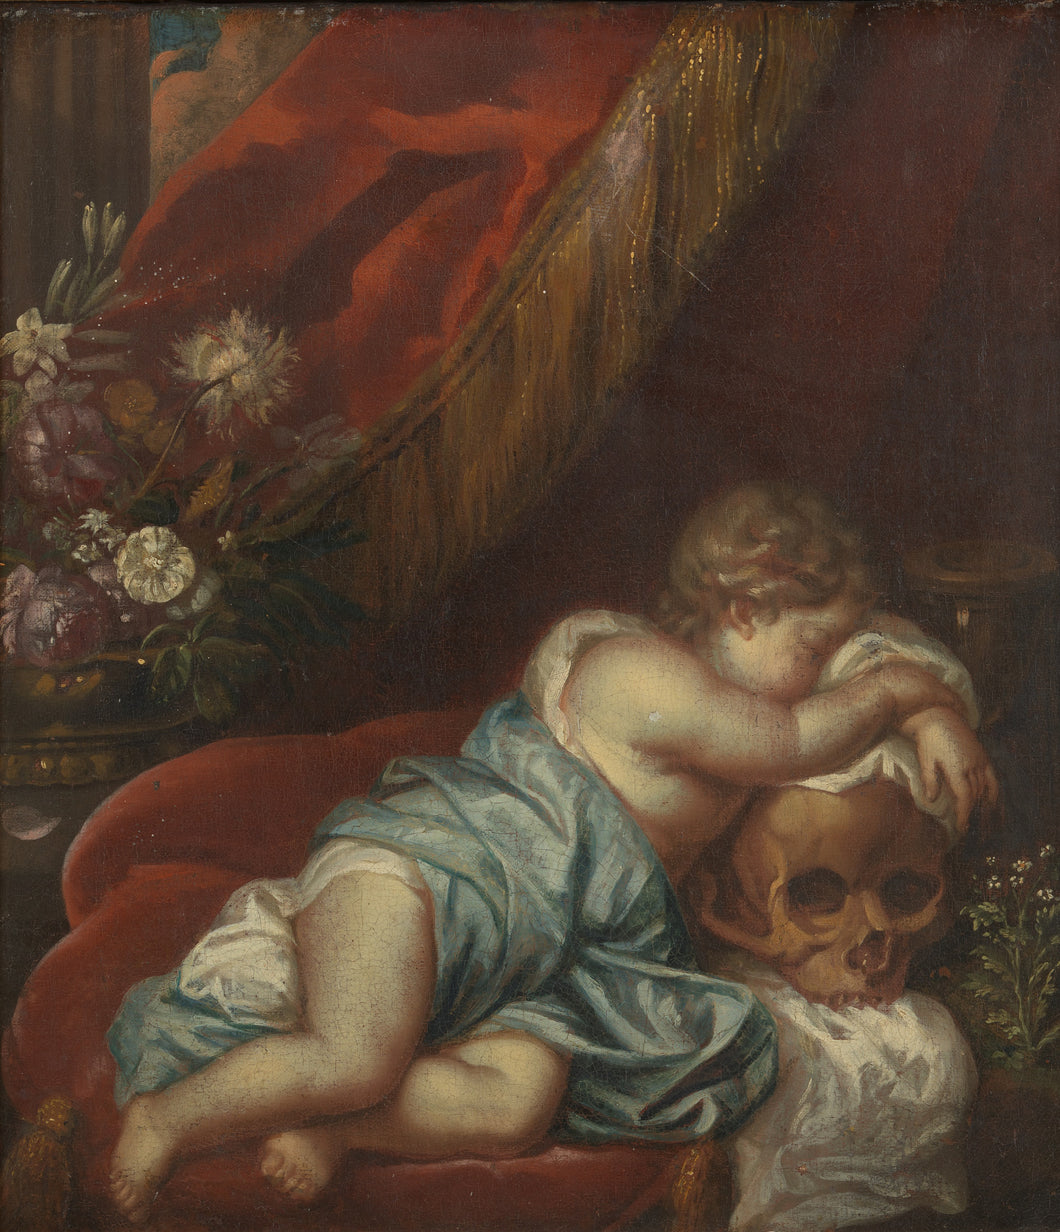 18th C, Late Baroque Style, Still Life, Dutch  School, Vanitas Scene with Cherub leaning on a Skull, Oil on Canvas, 77.5 x 71x 7 cm, Framed